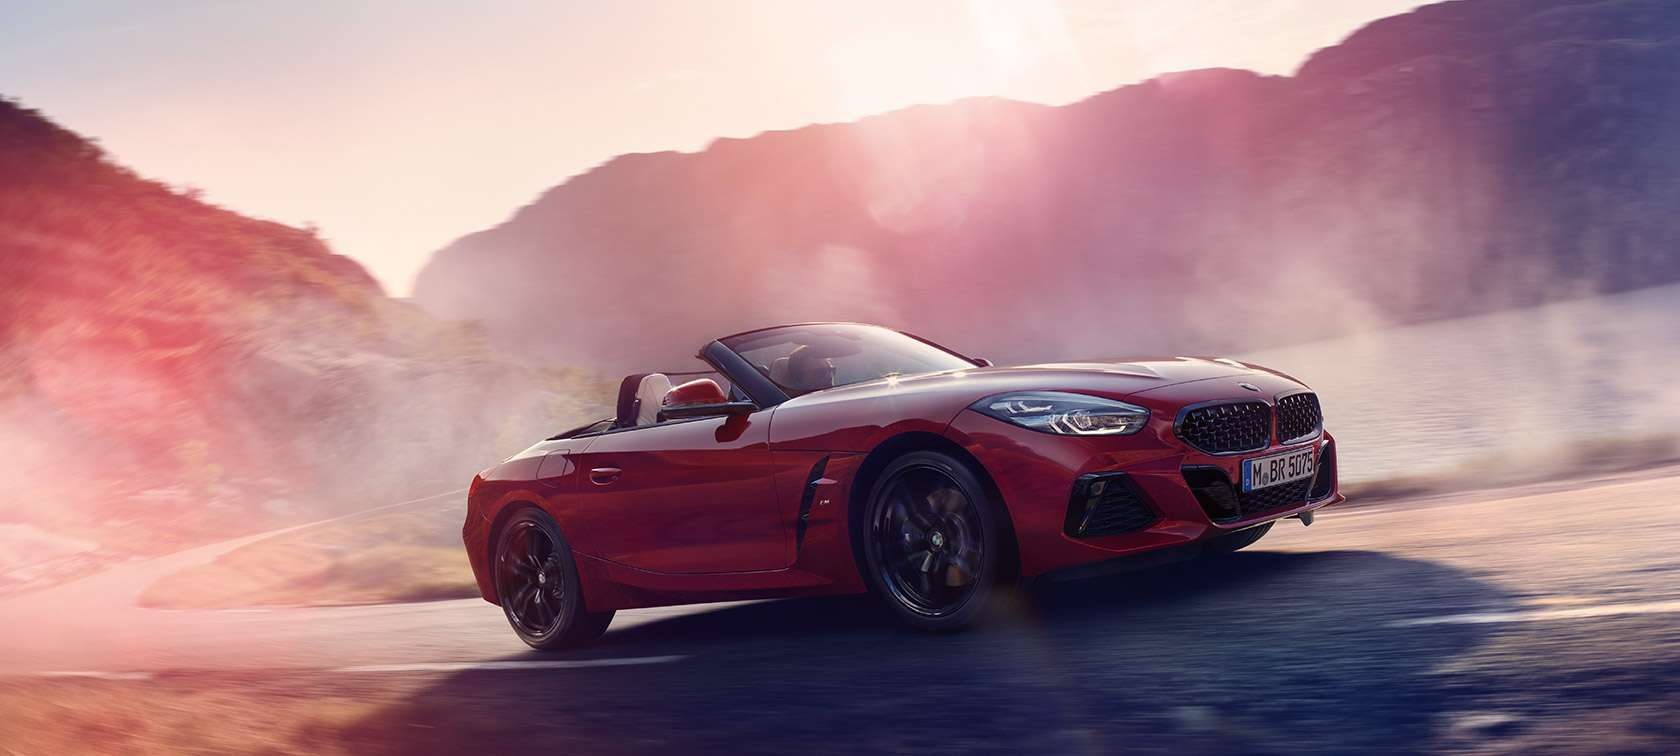 BMW Z4 Sports WallpaperBMW Z4 Sports Wallpaper